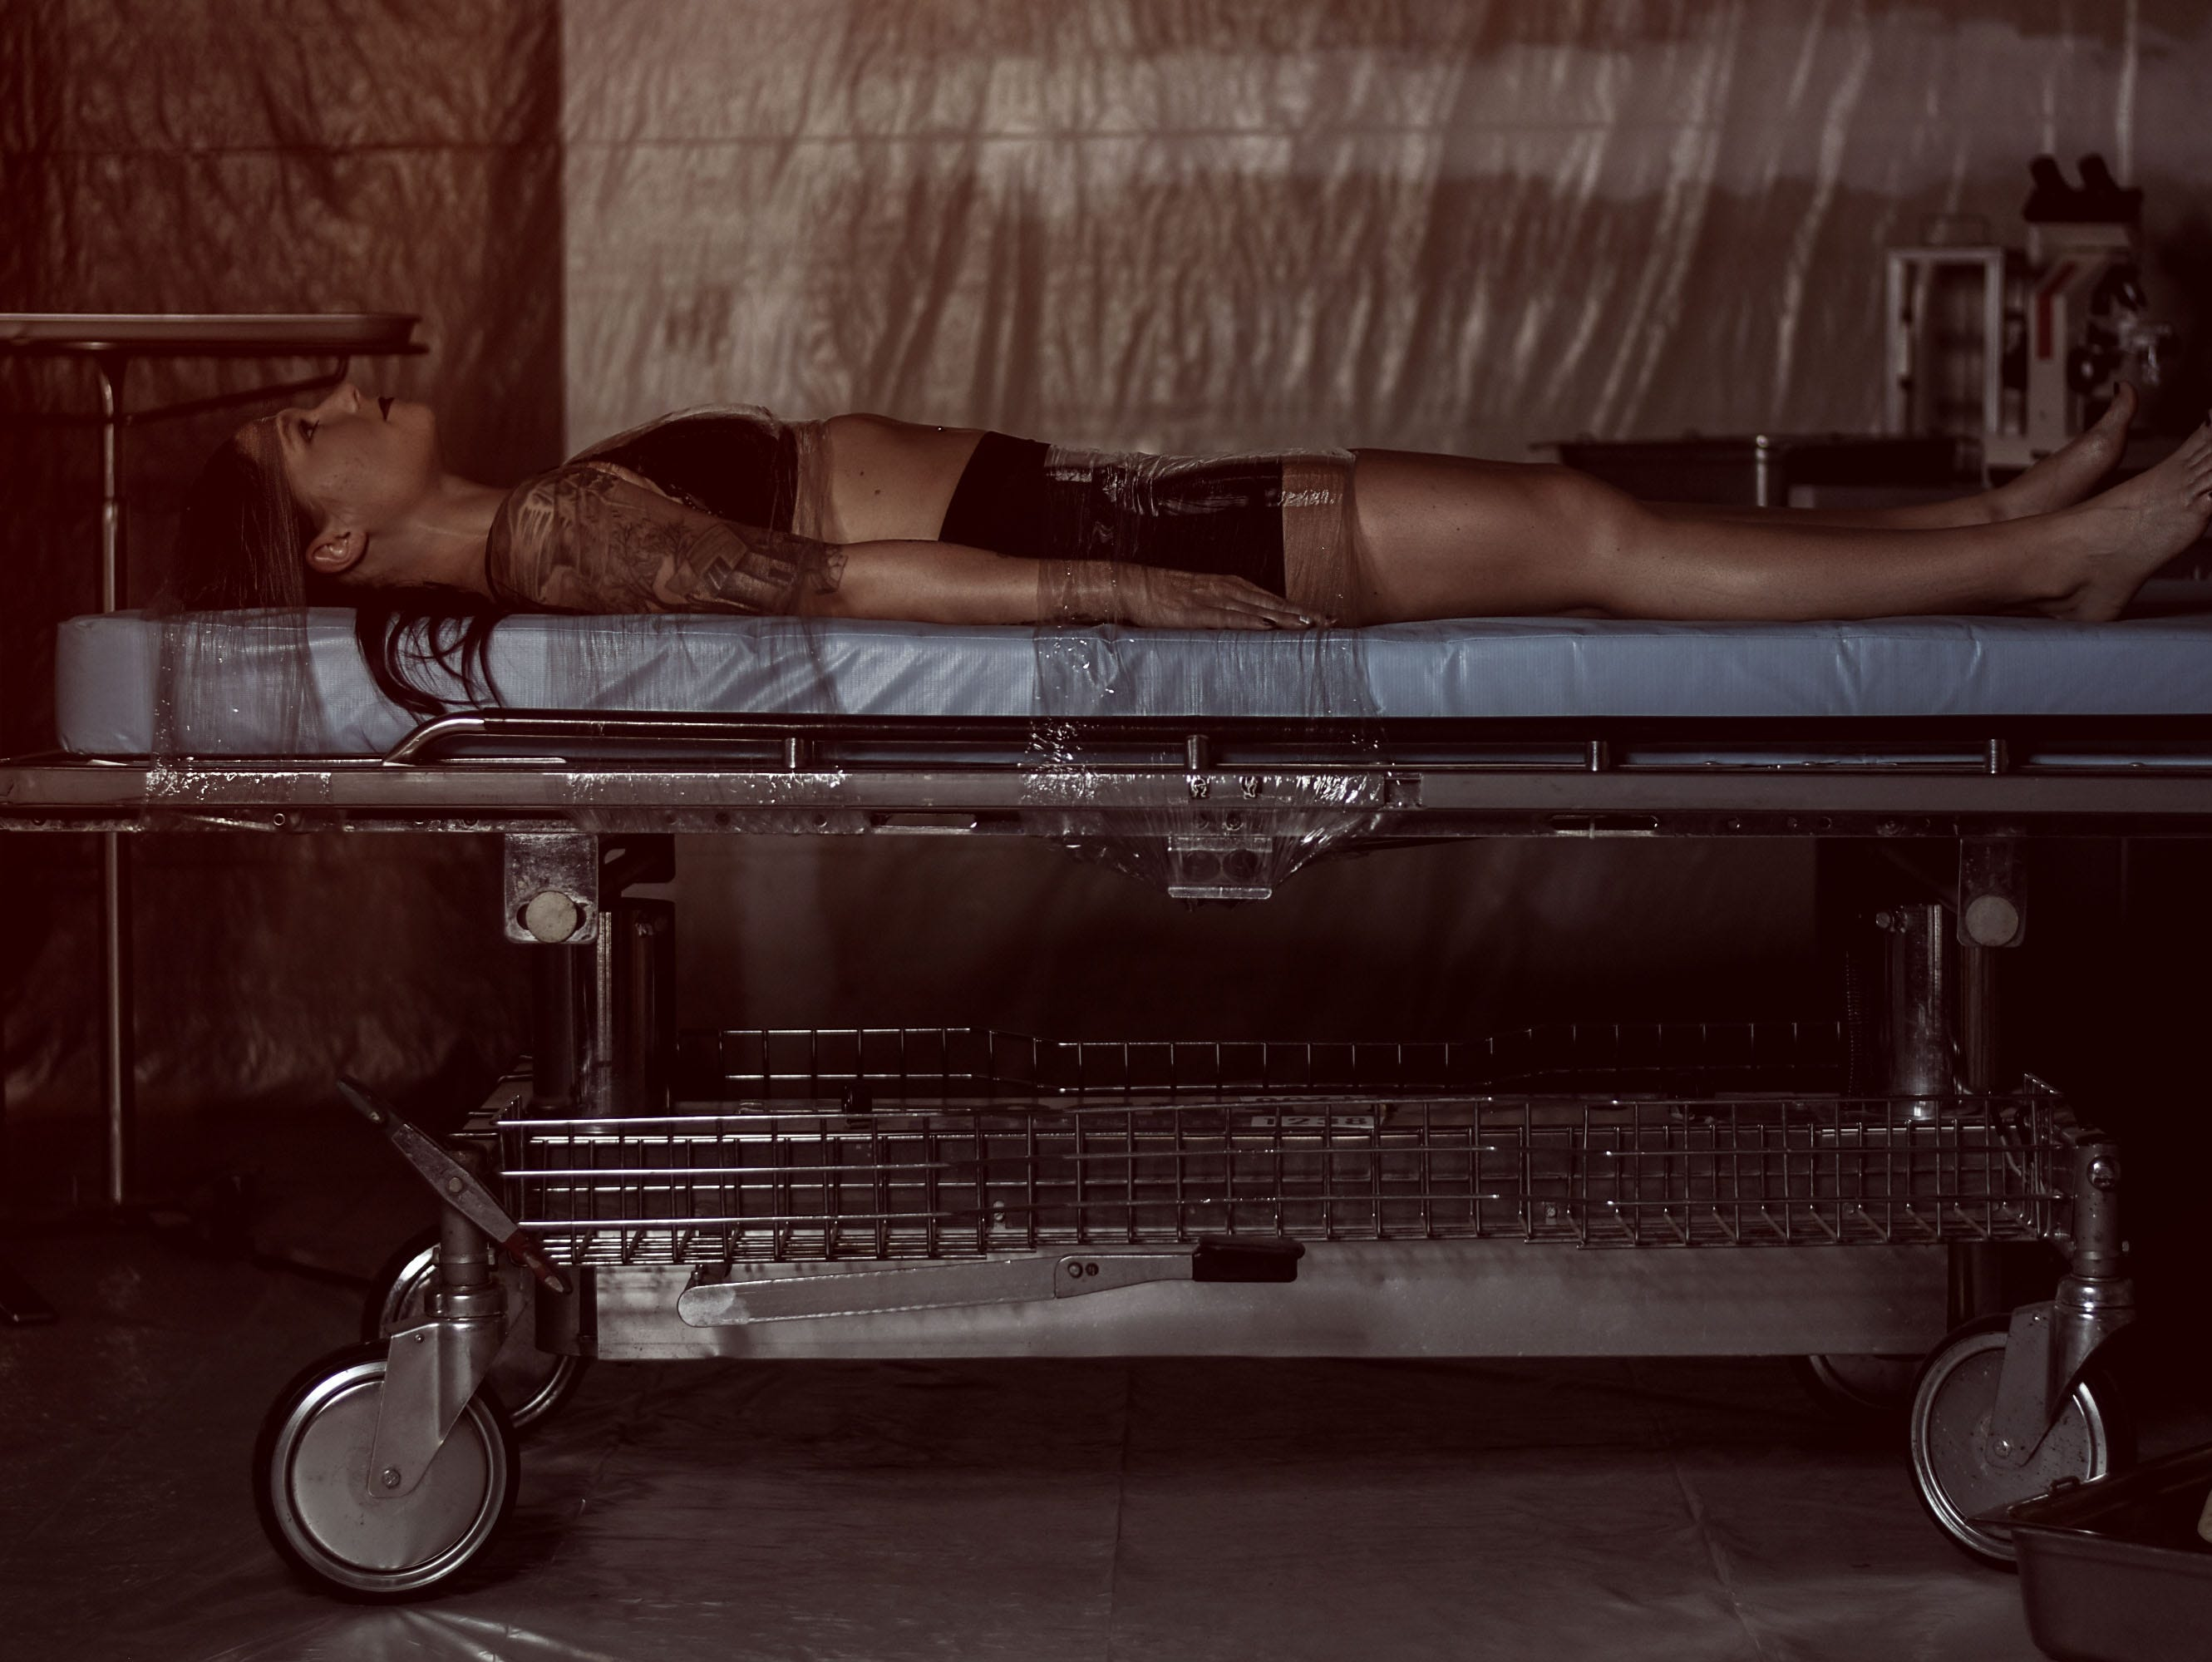 Leighann Word plays the victim in Mallory Bertrand's horror-inspired photo shoot